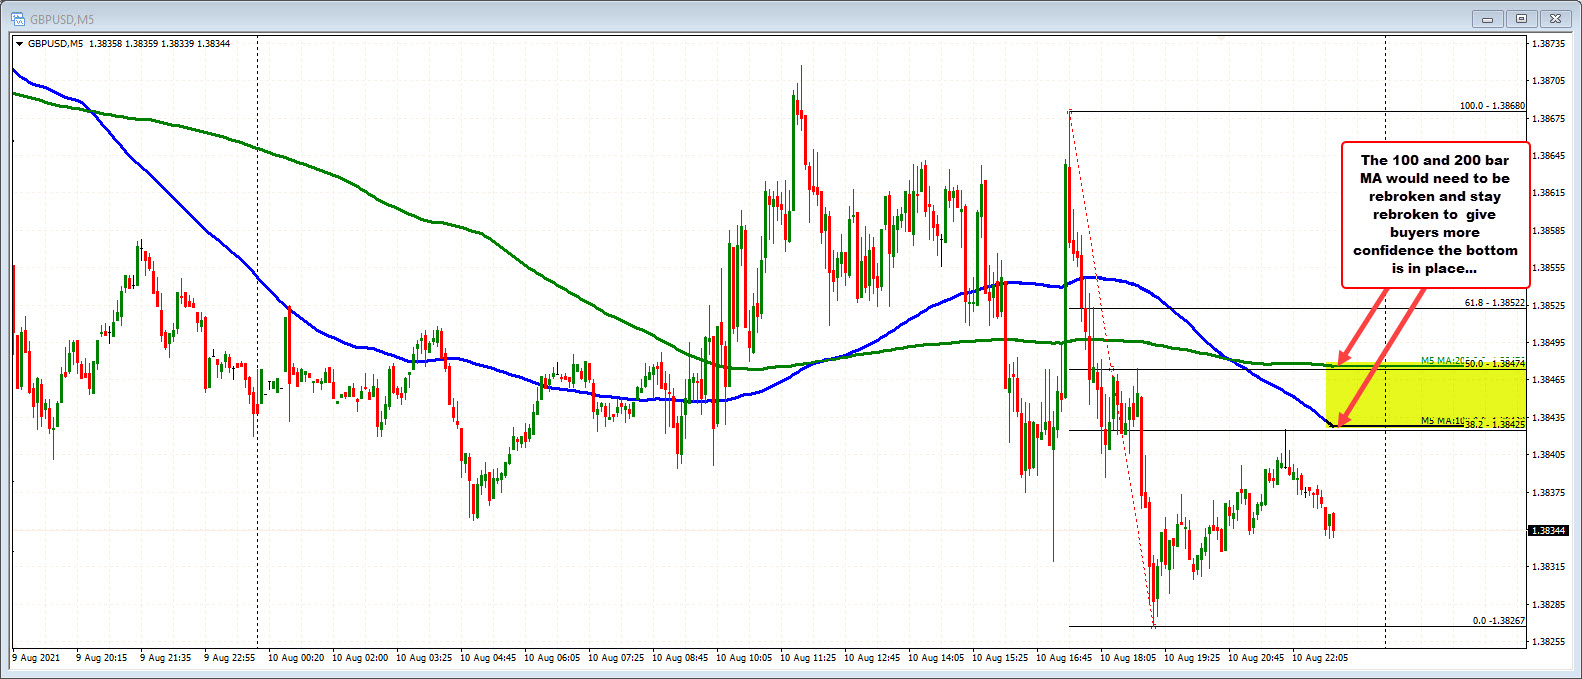 GBPUSD within 5 minutes